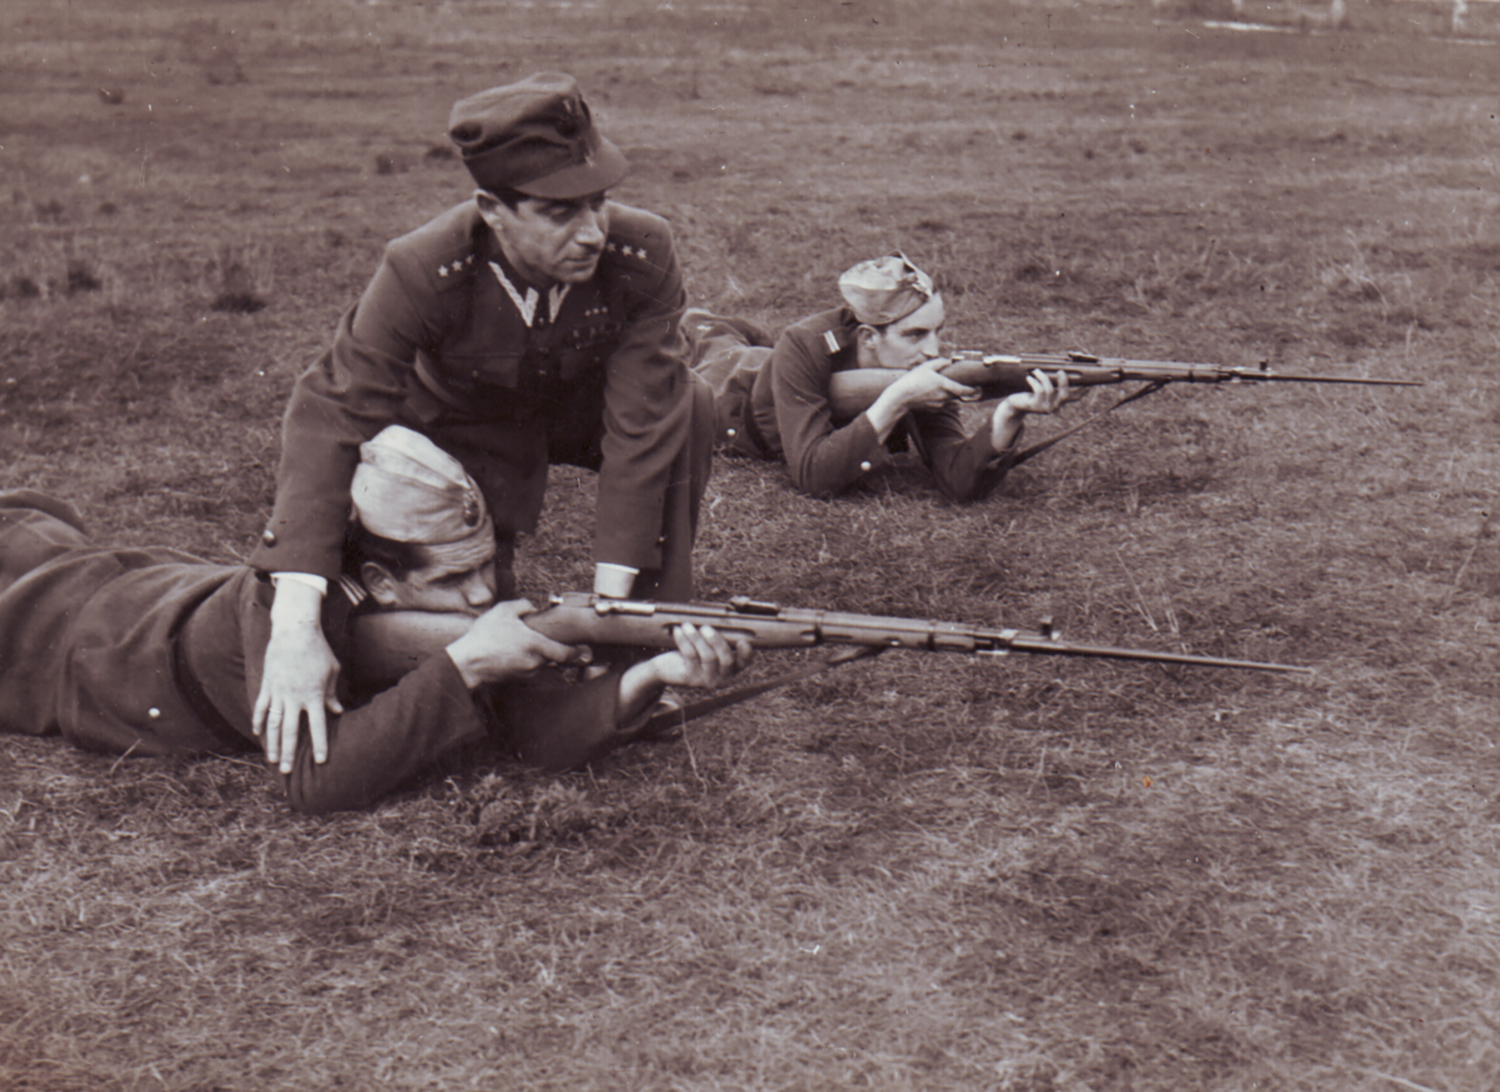 Captain Roman Yagel training his cadets at the 1st infantry regiment of the Polish army. Lomza, Poland. 1951